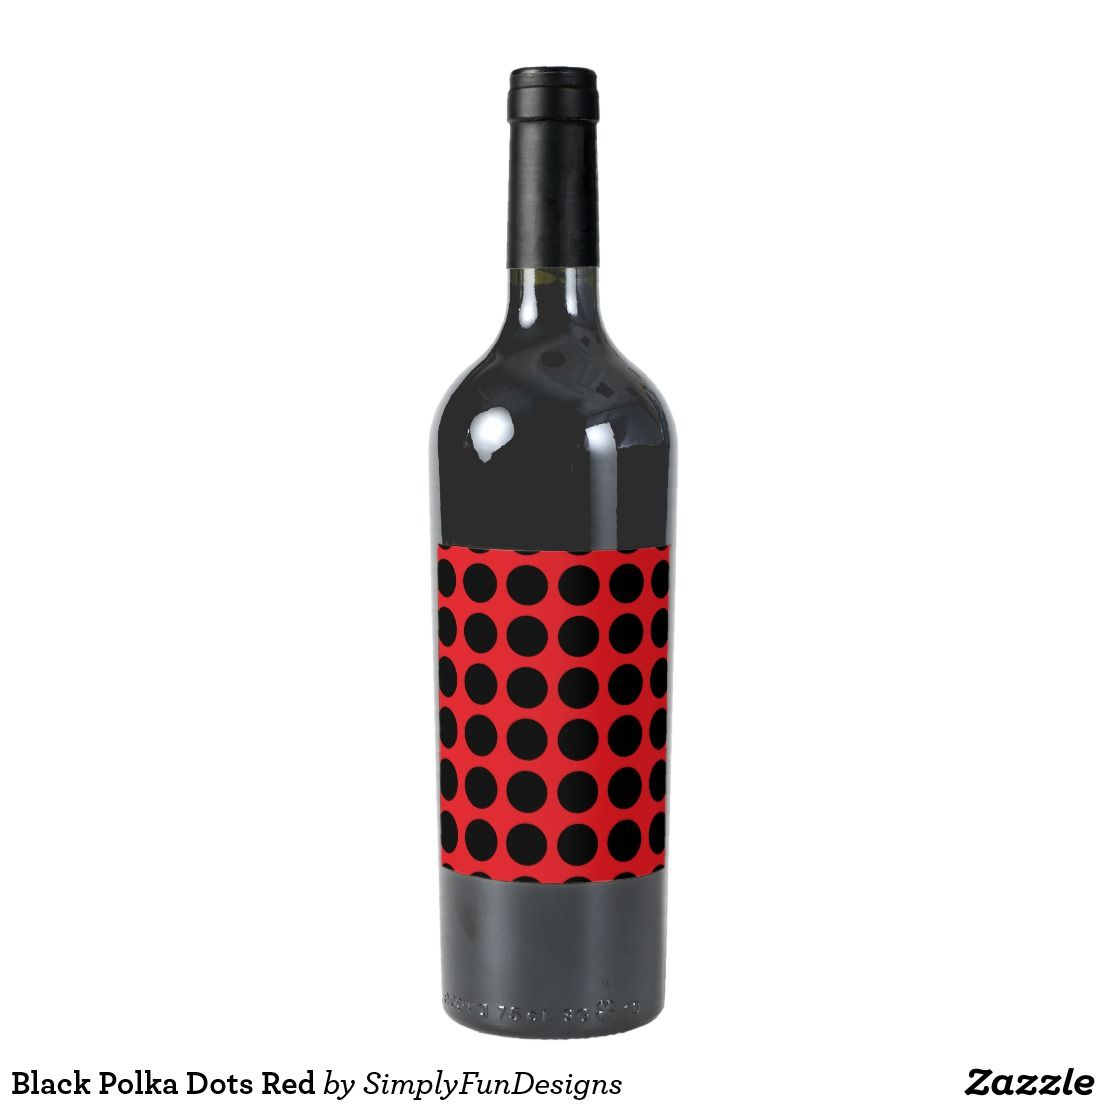 Black Polka Dots Red Wine Label Personalized Wine Bottles Personalized Wine Labels Wedding Wine Labels